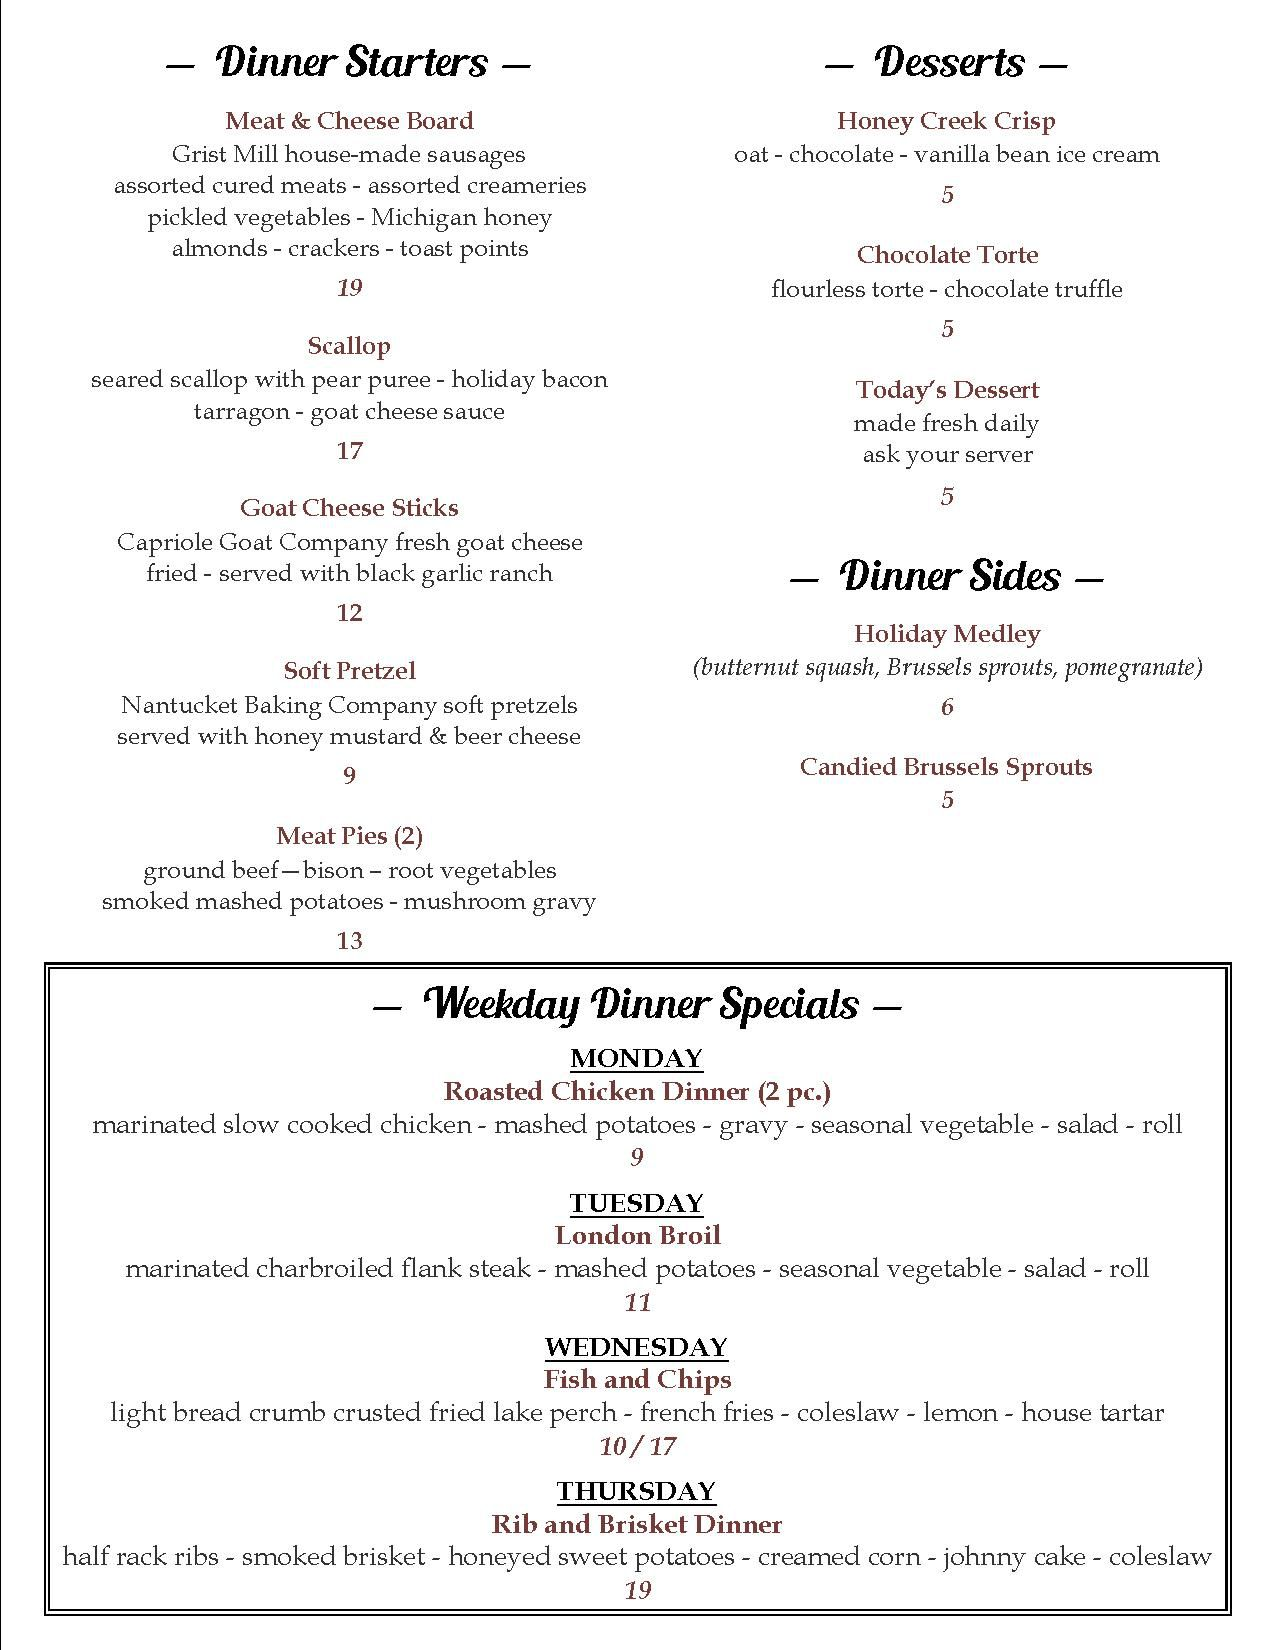 Honey-Creek-Inn-Dinner-Menu-1.18.17b